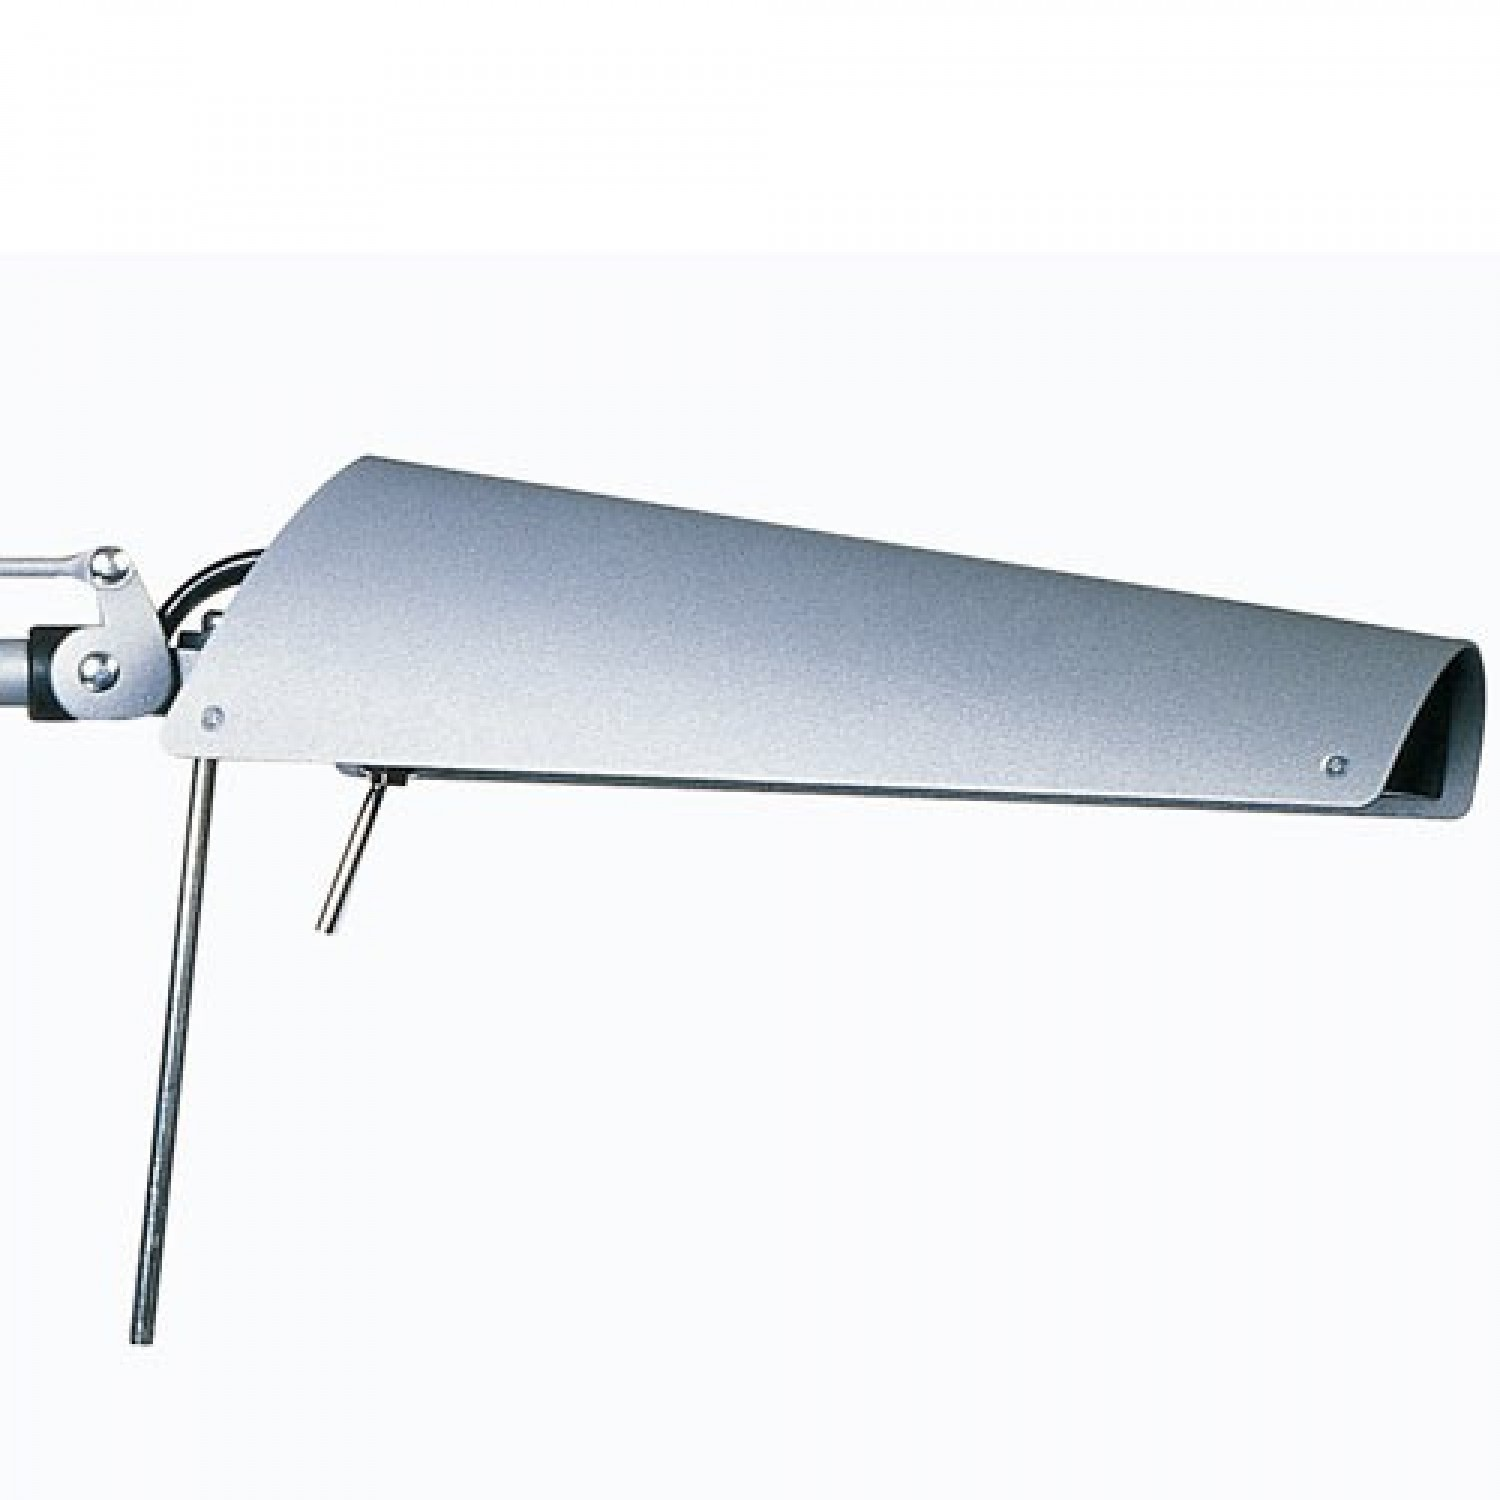 "Luxo Air LED, 35W, 24"" Arm, Edge Clamp"